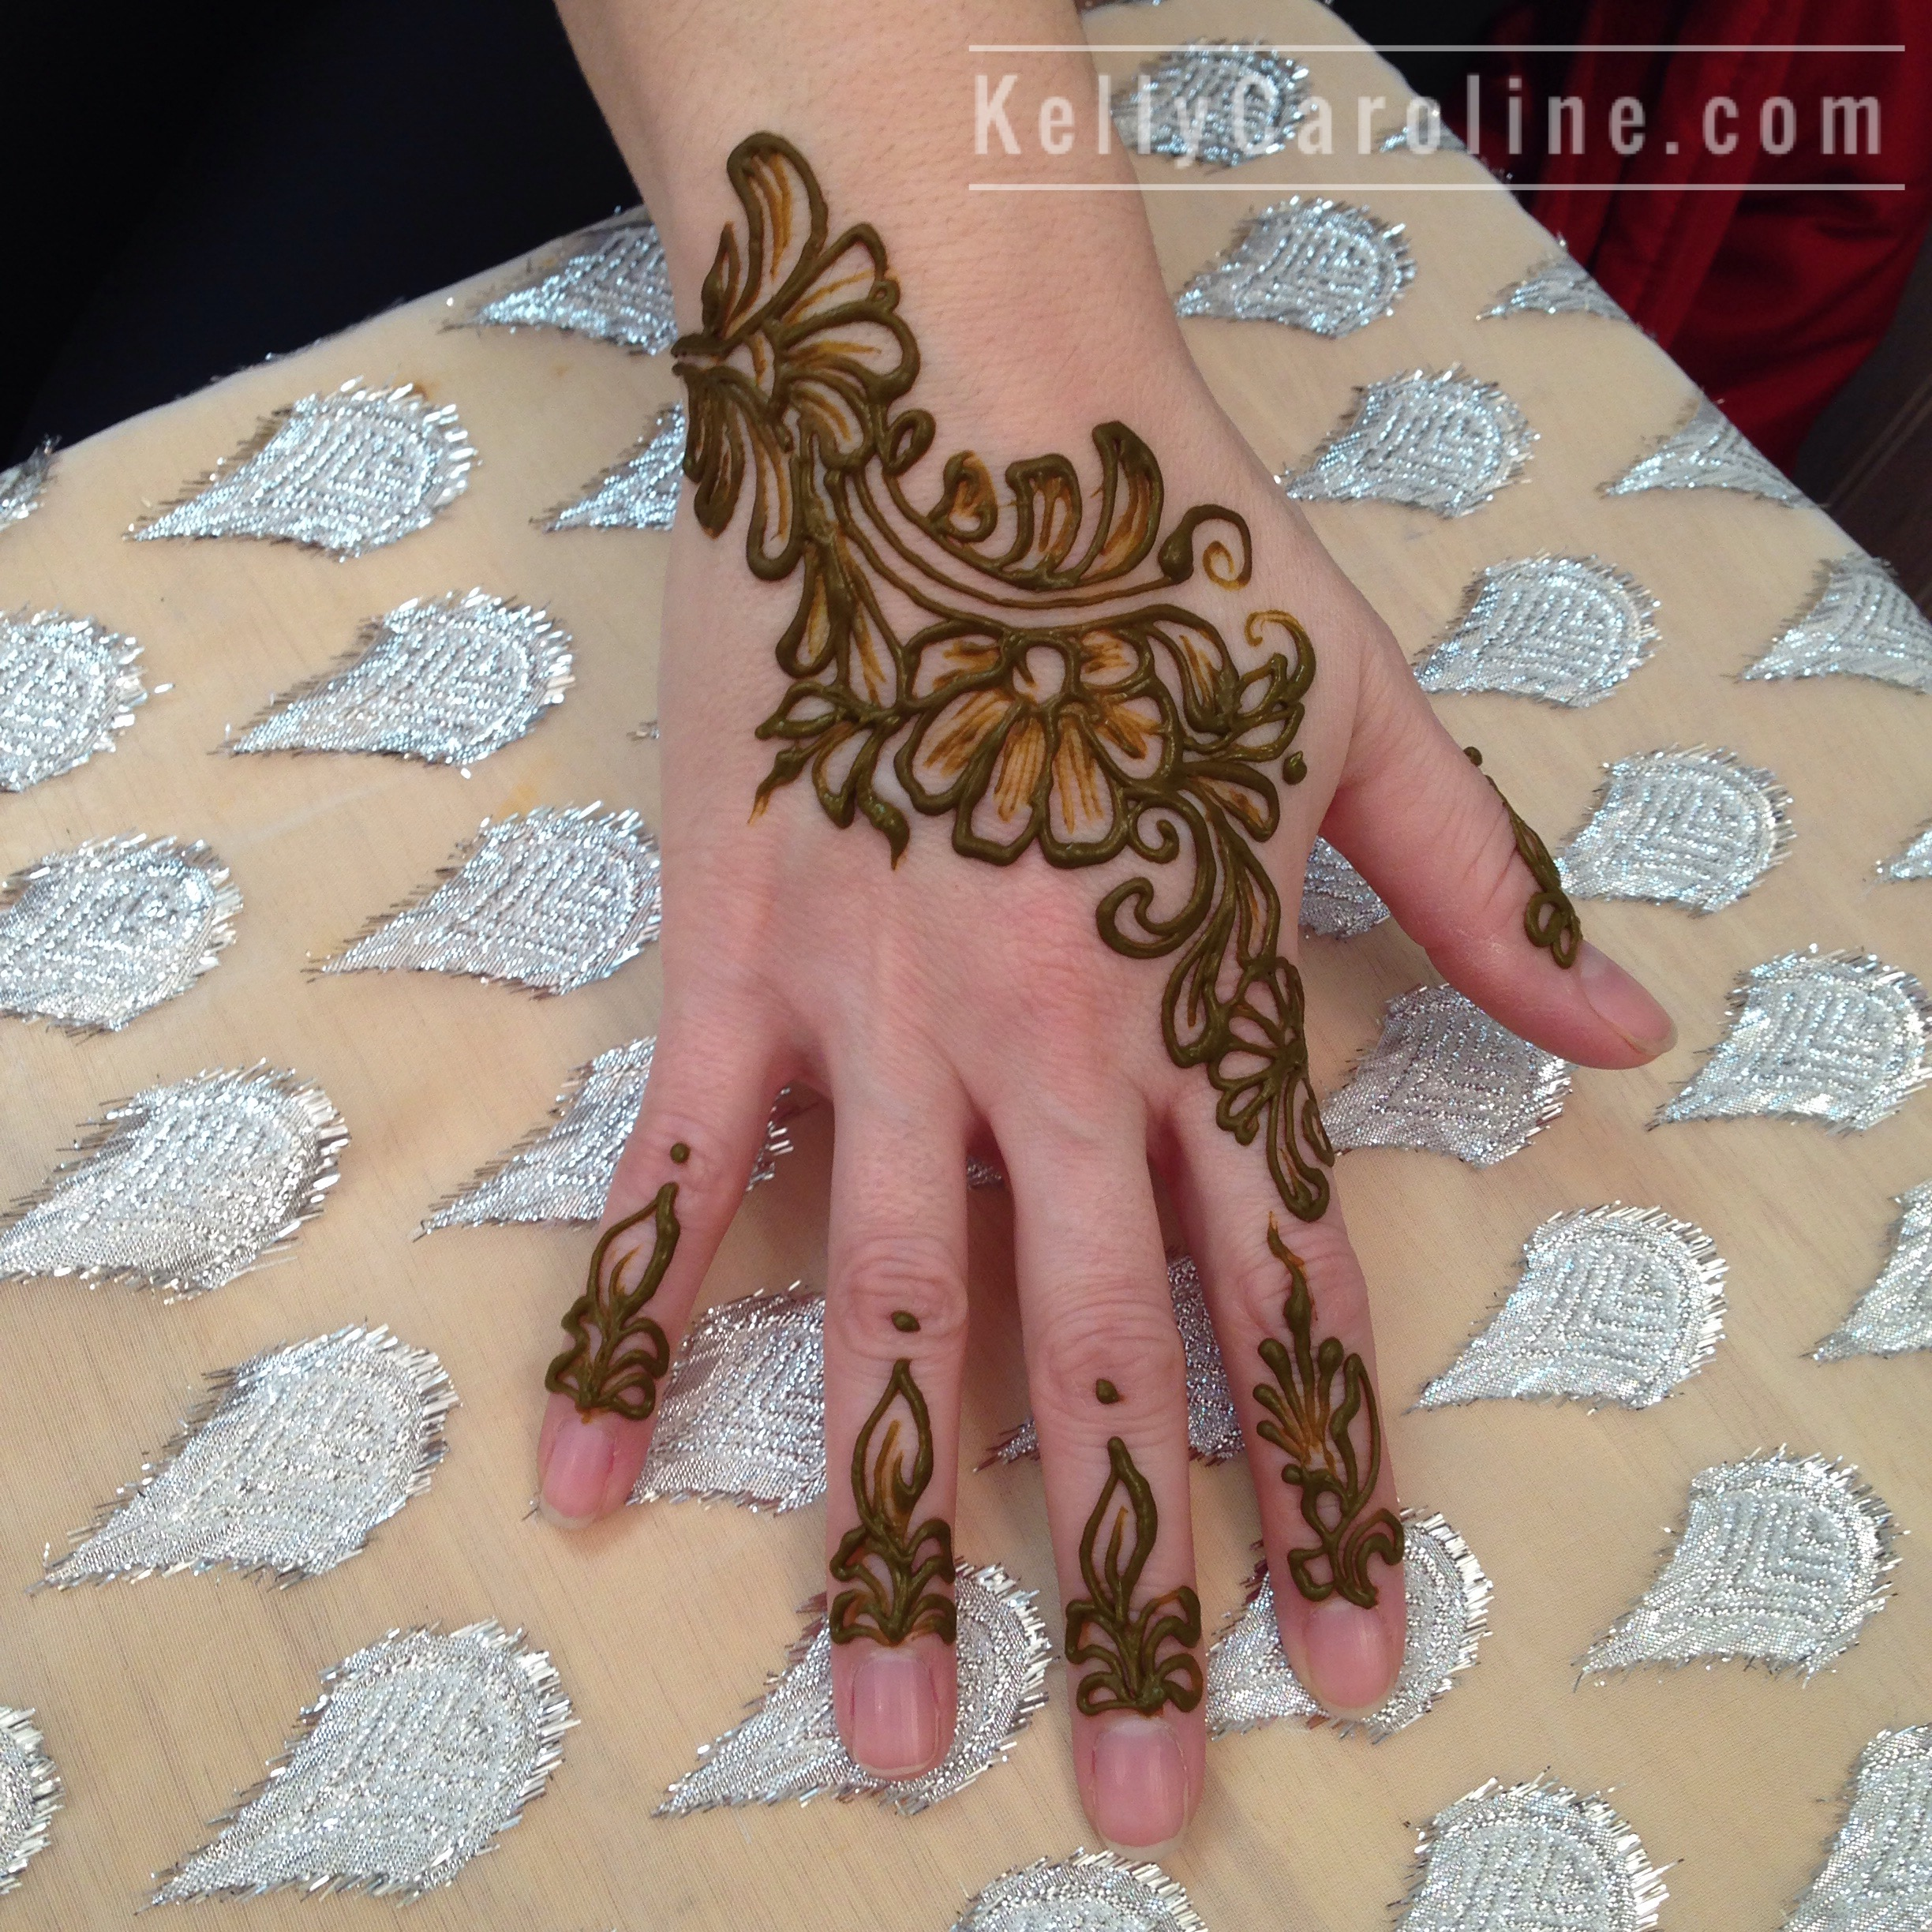 8646b5d99 I mean – like the Little Black Dress, cute floral henna tattoos on the hand  will always be on trend! Our favorites to do because we LOVE floral henna  ...